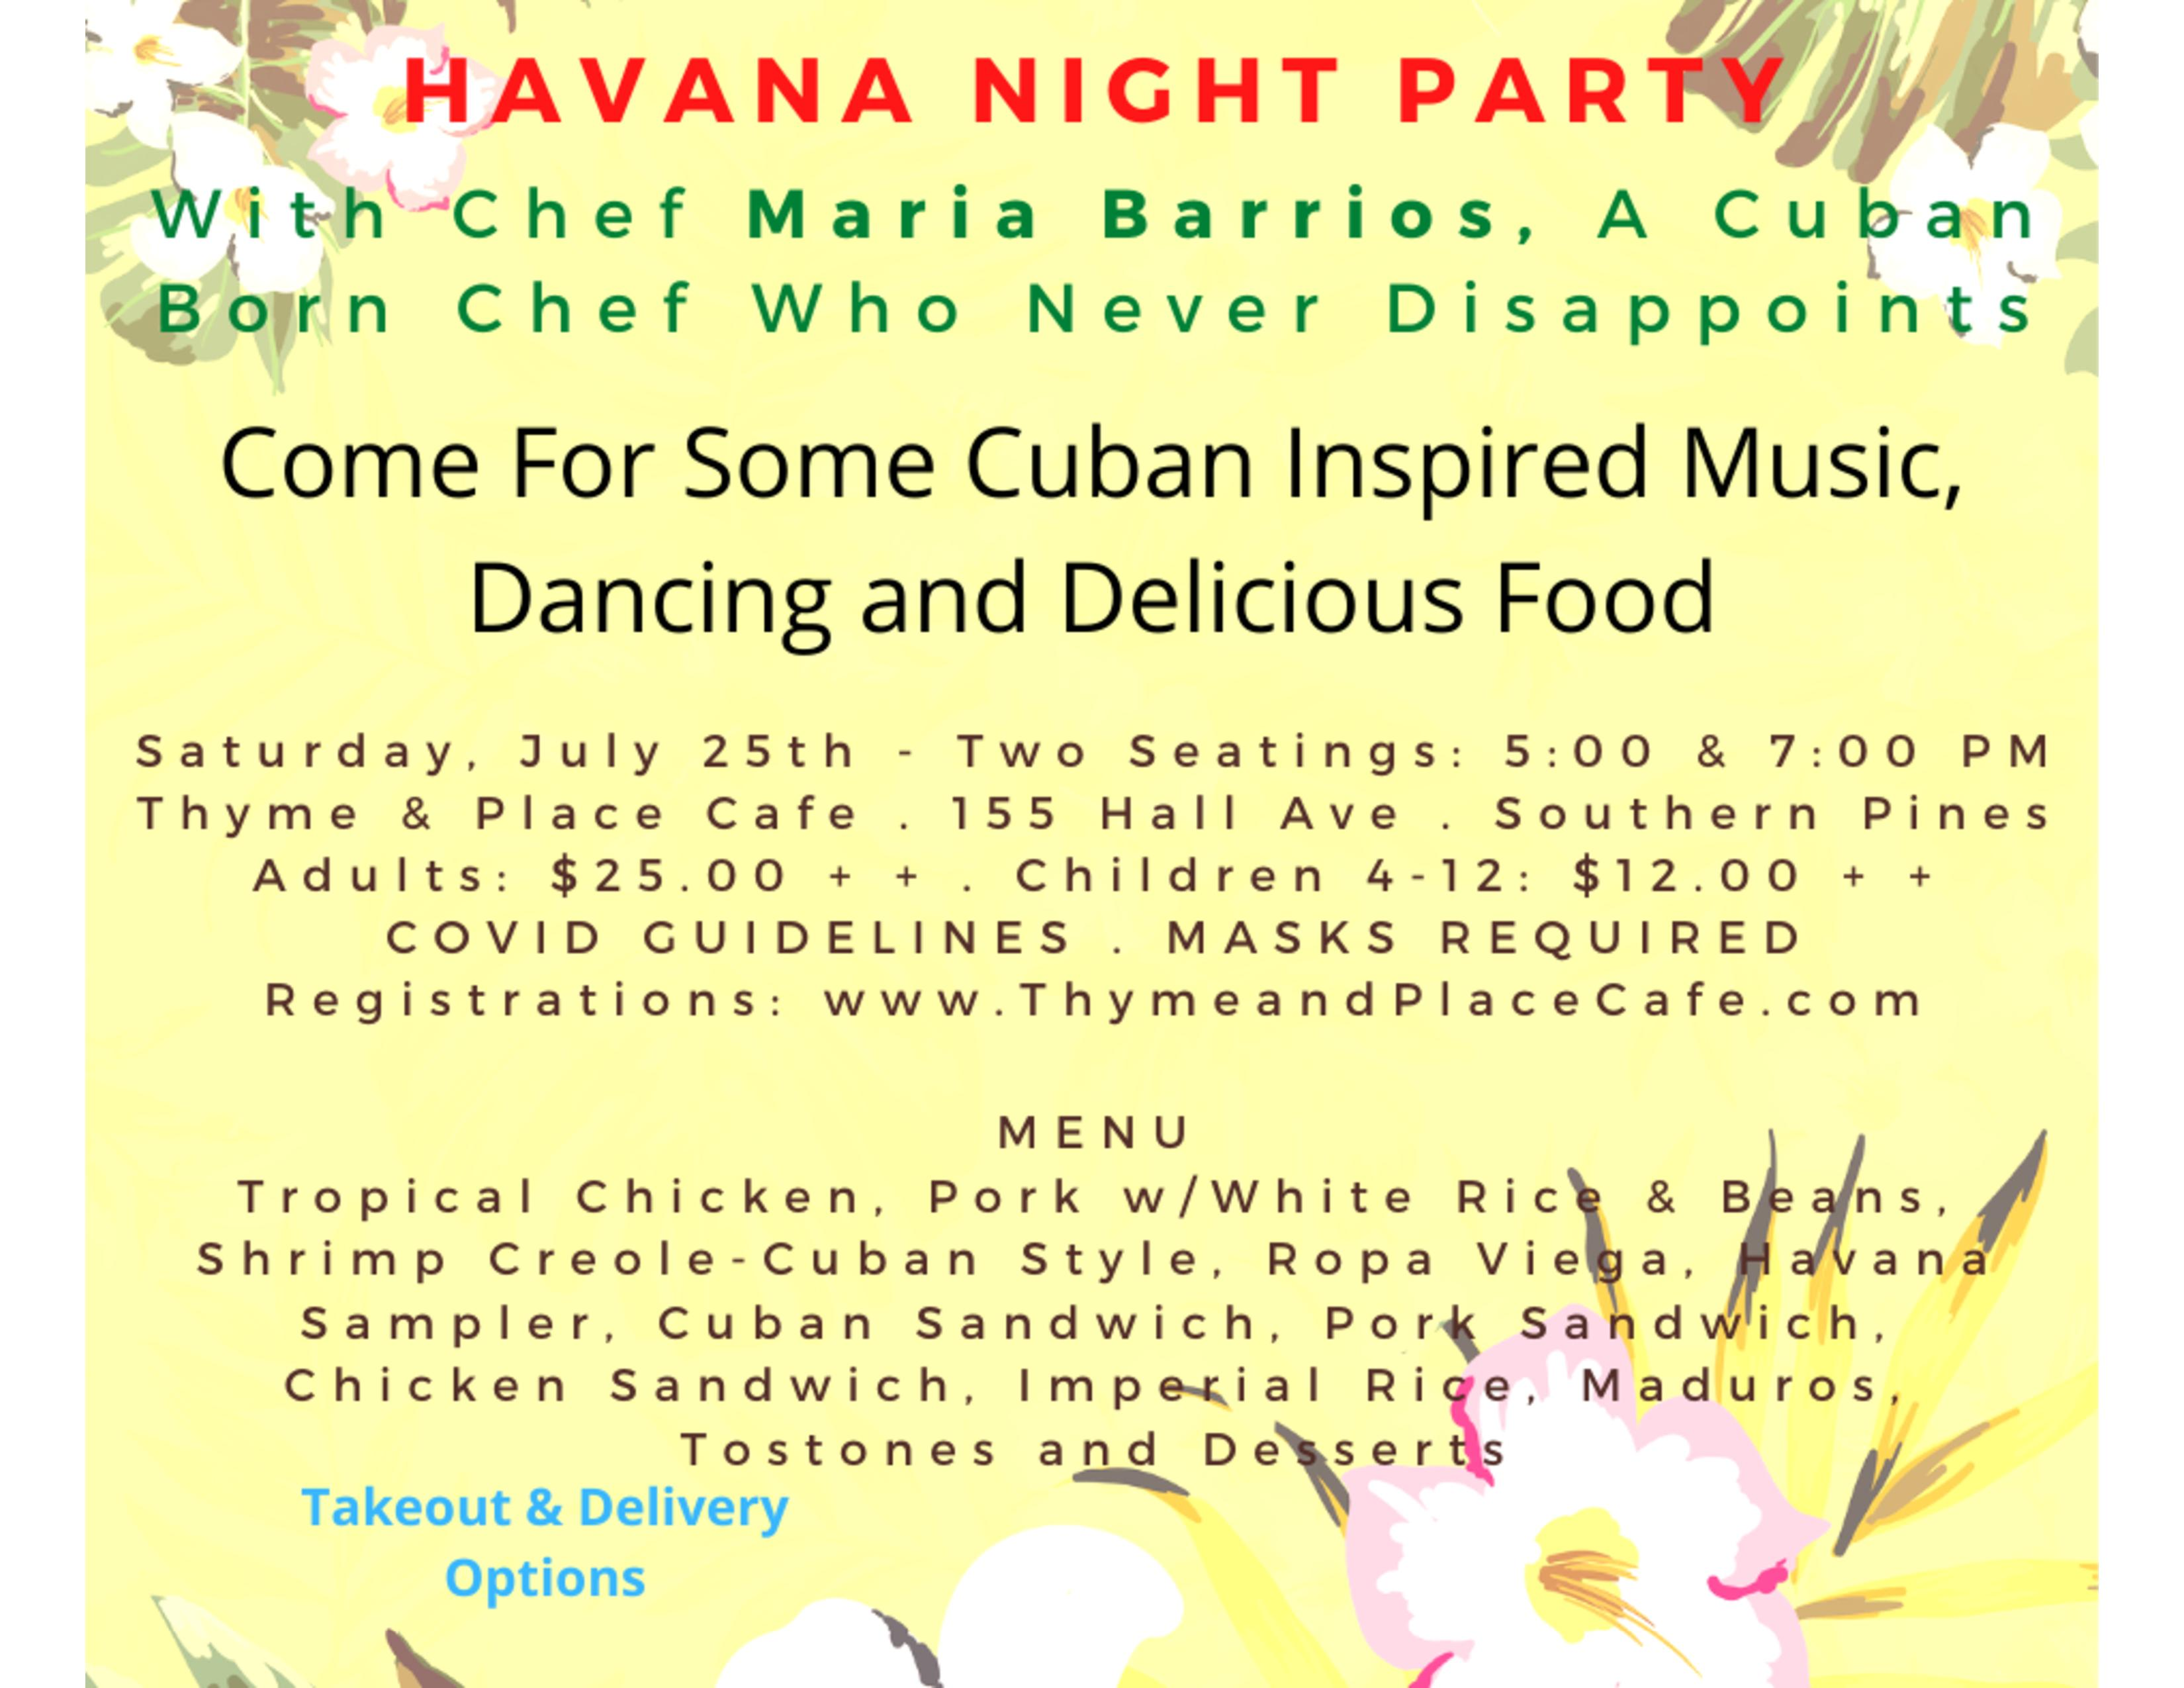 With Chef Maria Barrios, A Cuban Born Chef Who Never Disappoints Come For Some Cuban Inspired Music, Dancing and Delicious Food Saturday, July 25th - Two Seatings: 5:00 & 7:00 PM Thyme & Place Cafe 155 Hall Ave. Southern Pines Adults: $25.00 + + Children 4-12: $12.00 + + COVID GUIDELINES : MASKS REQUIRED Registrations: www.ThymeandPlaceCafe.com MENU Tropical Chicken, Pork w/ White Rice & Beans, Shrimp Creole-Cuban Style, Popa Viega, Havana Sampler, Cuban Sandwich, Pork Sandwich, Chicken Sandwich, Imperial Rice, Maduros, Tostones and Desserts, Takeout & Delivery Options